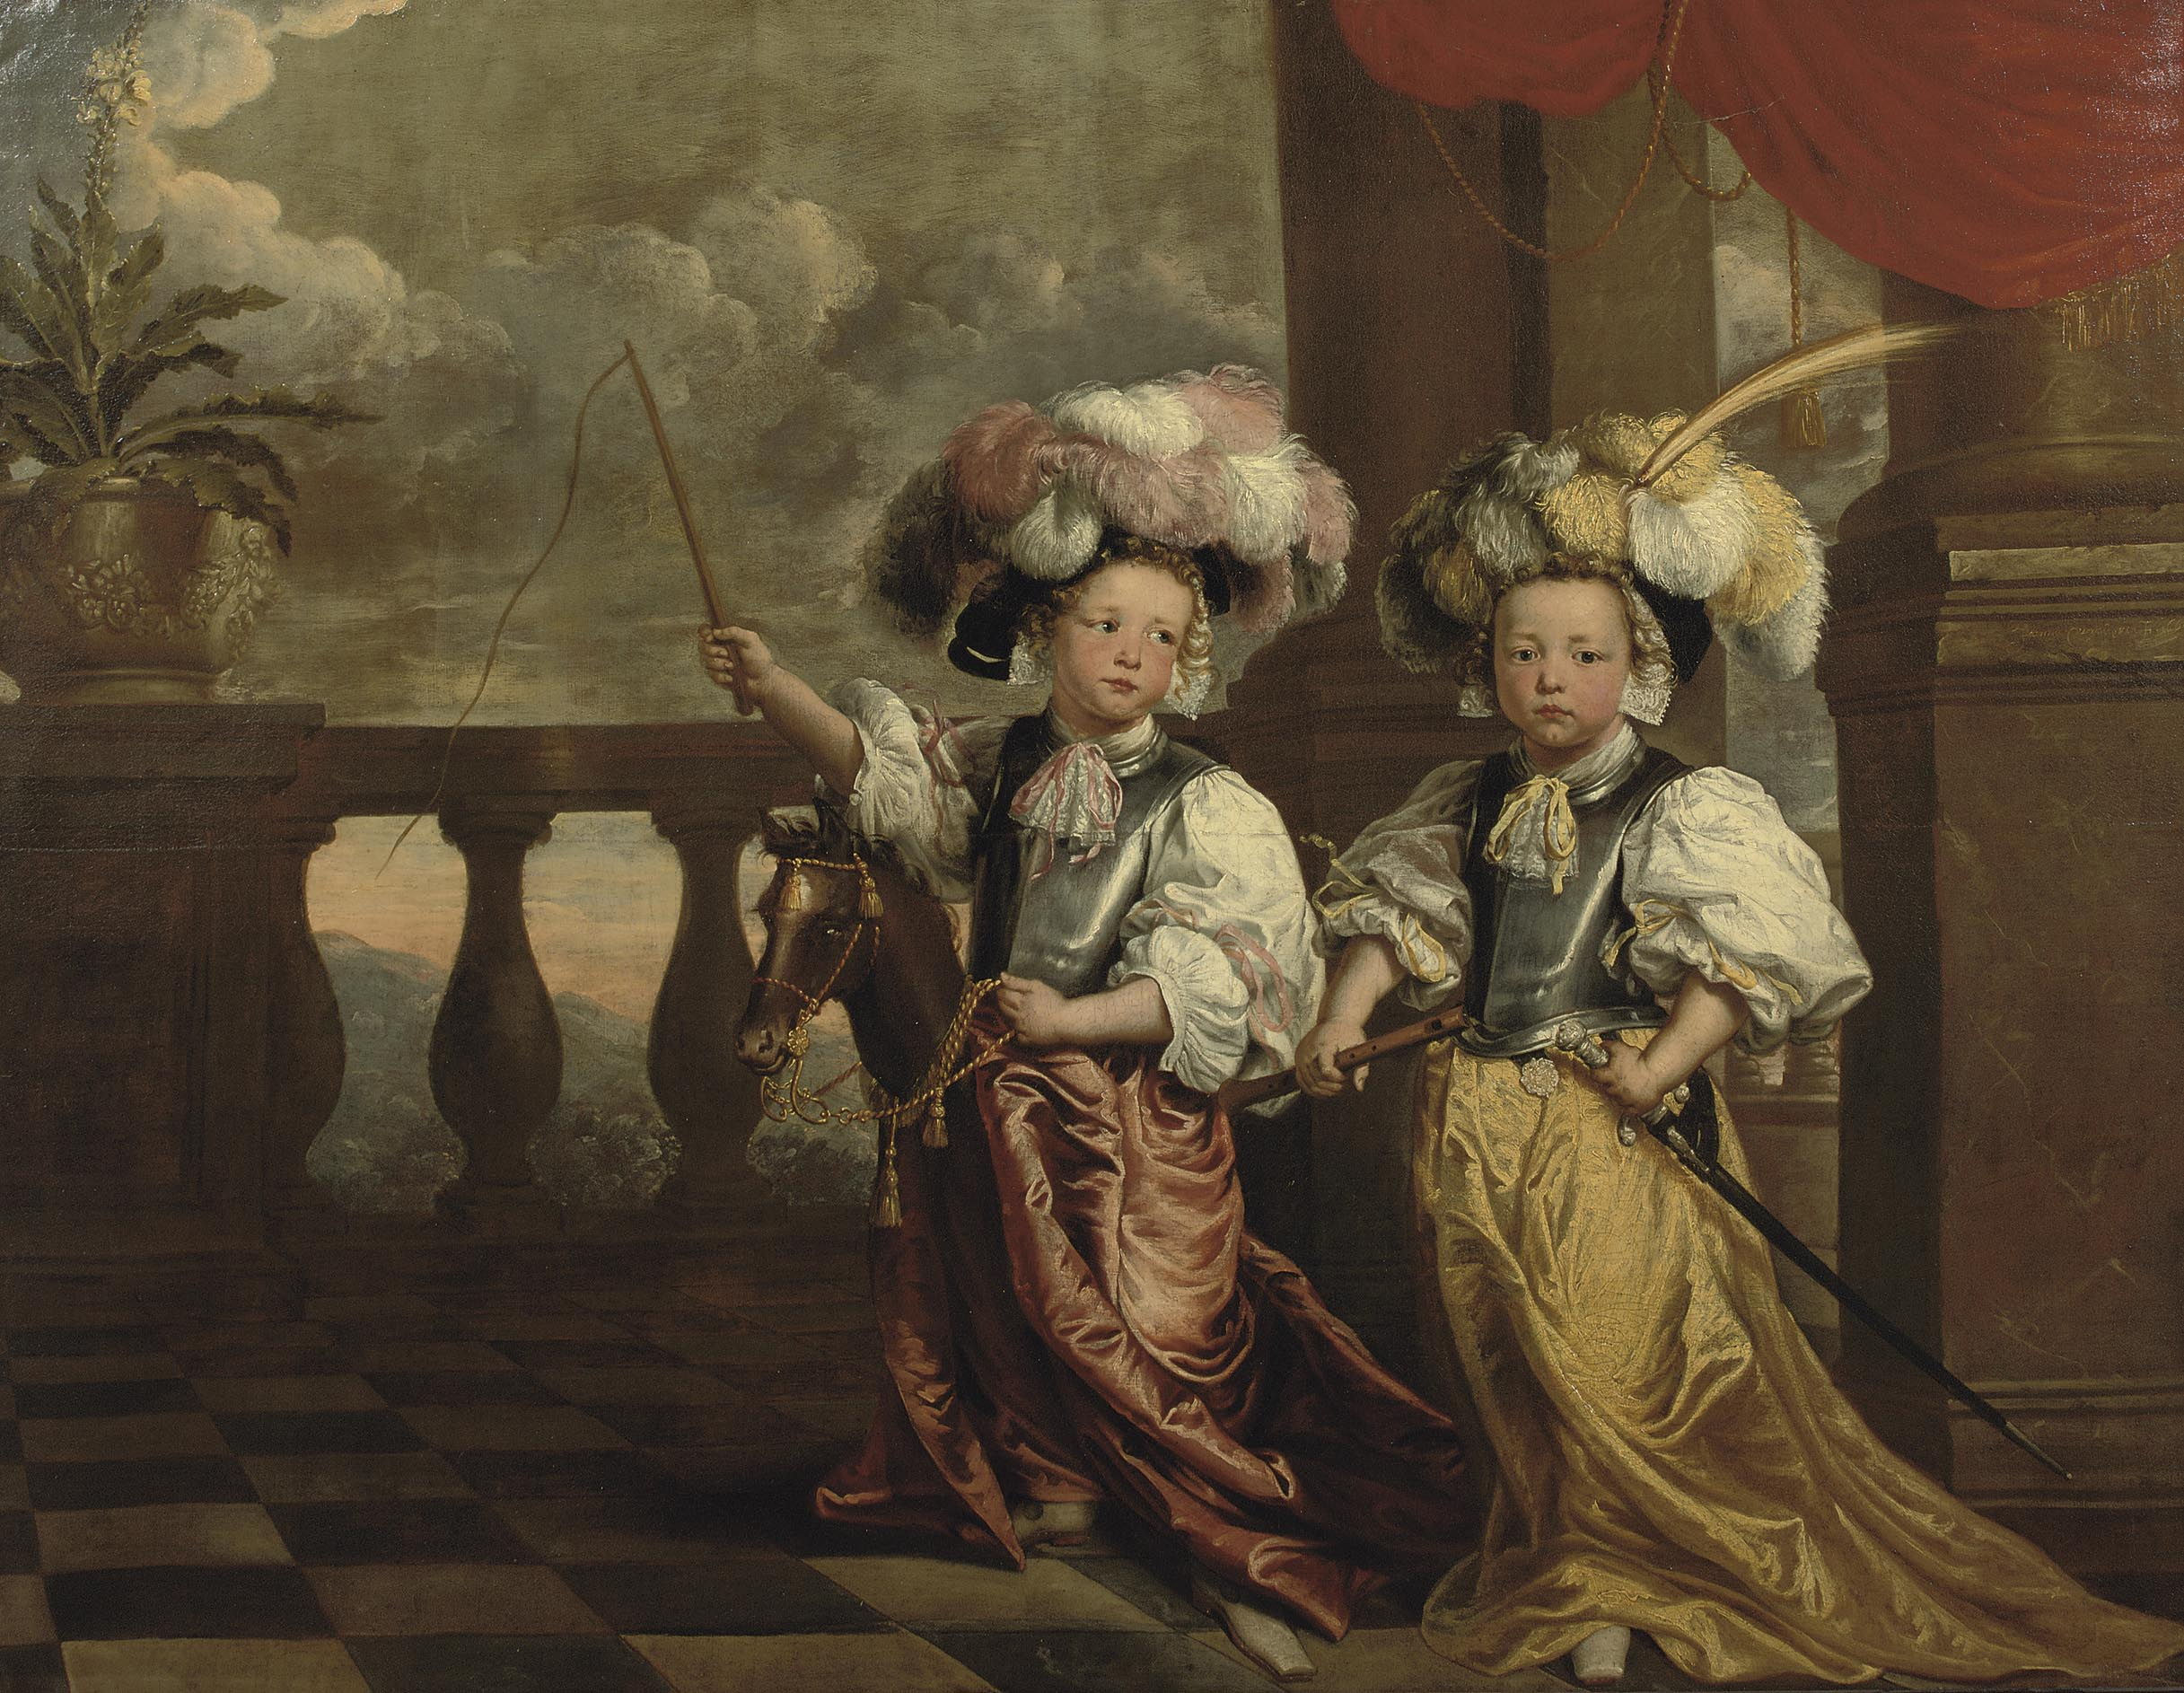 Jeanne Vergouwen (1630-1714), Portrait of Two Young Boys Dressed up as Knights, 1668